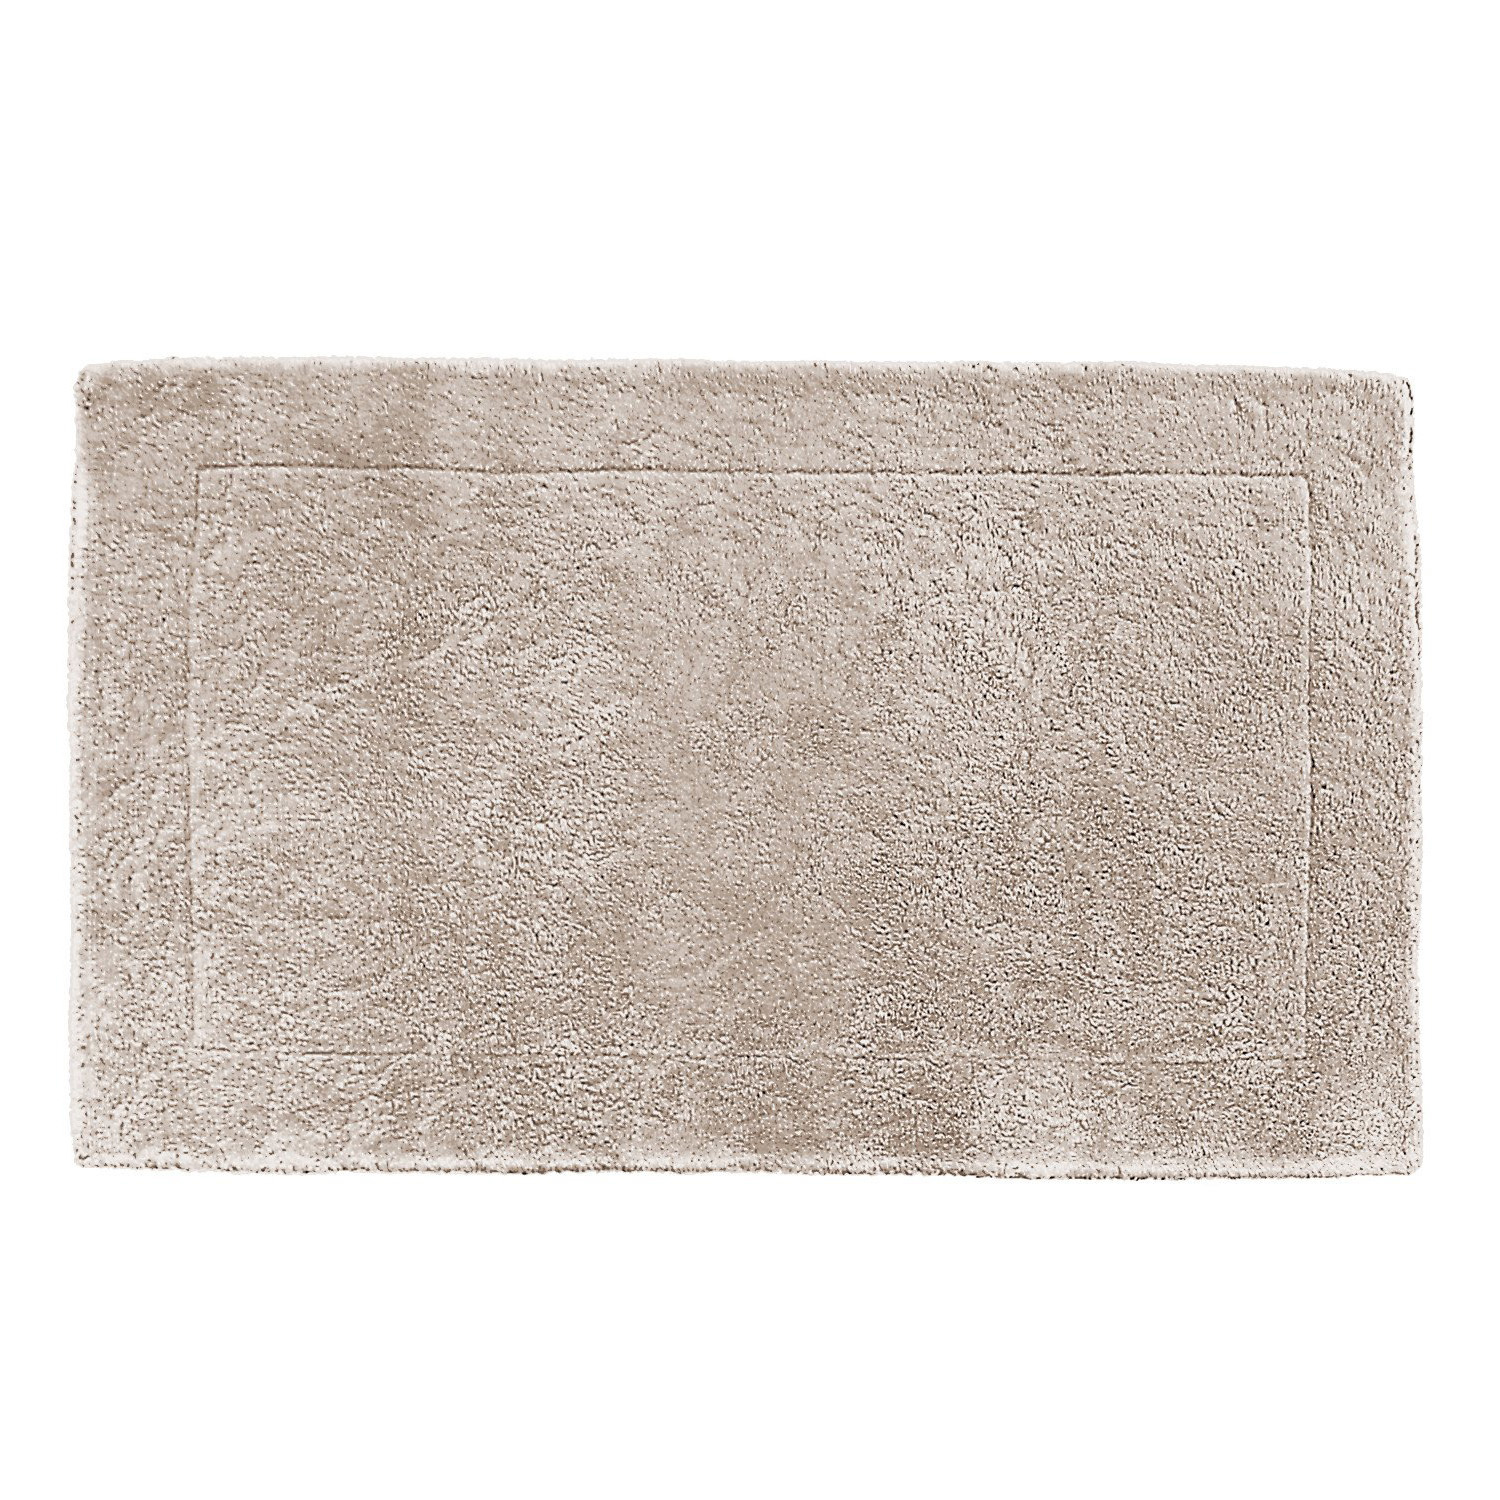 Double Sided Bath Rugs - Assorted Colours-5